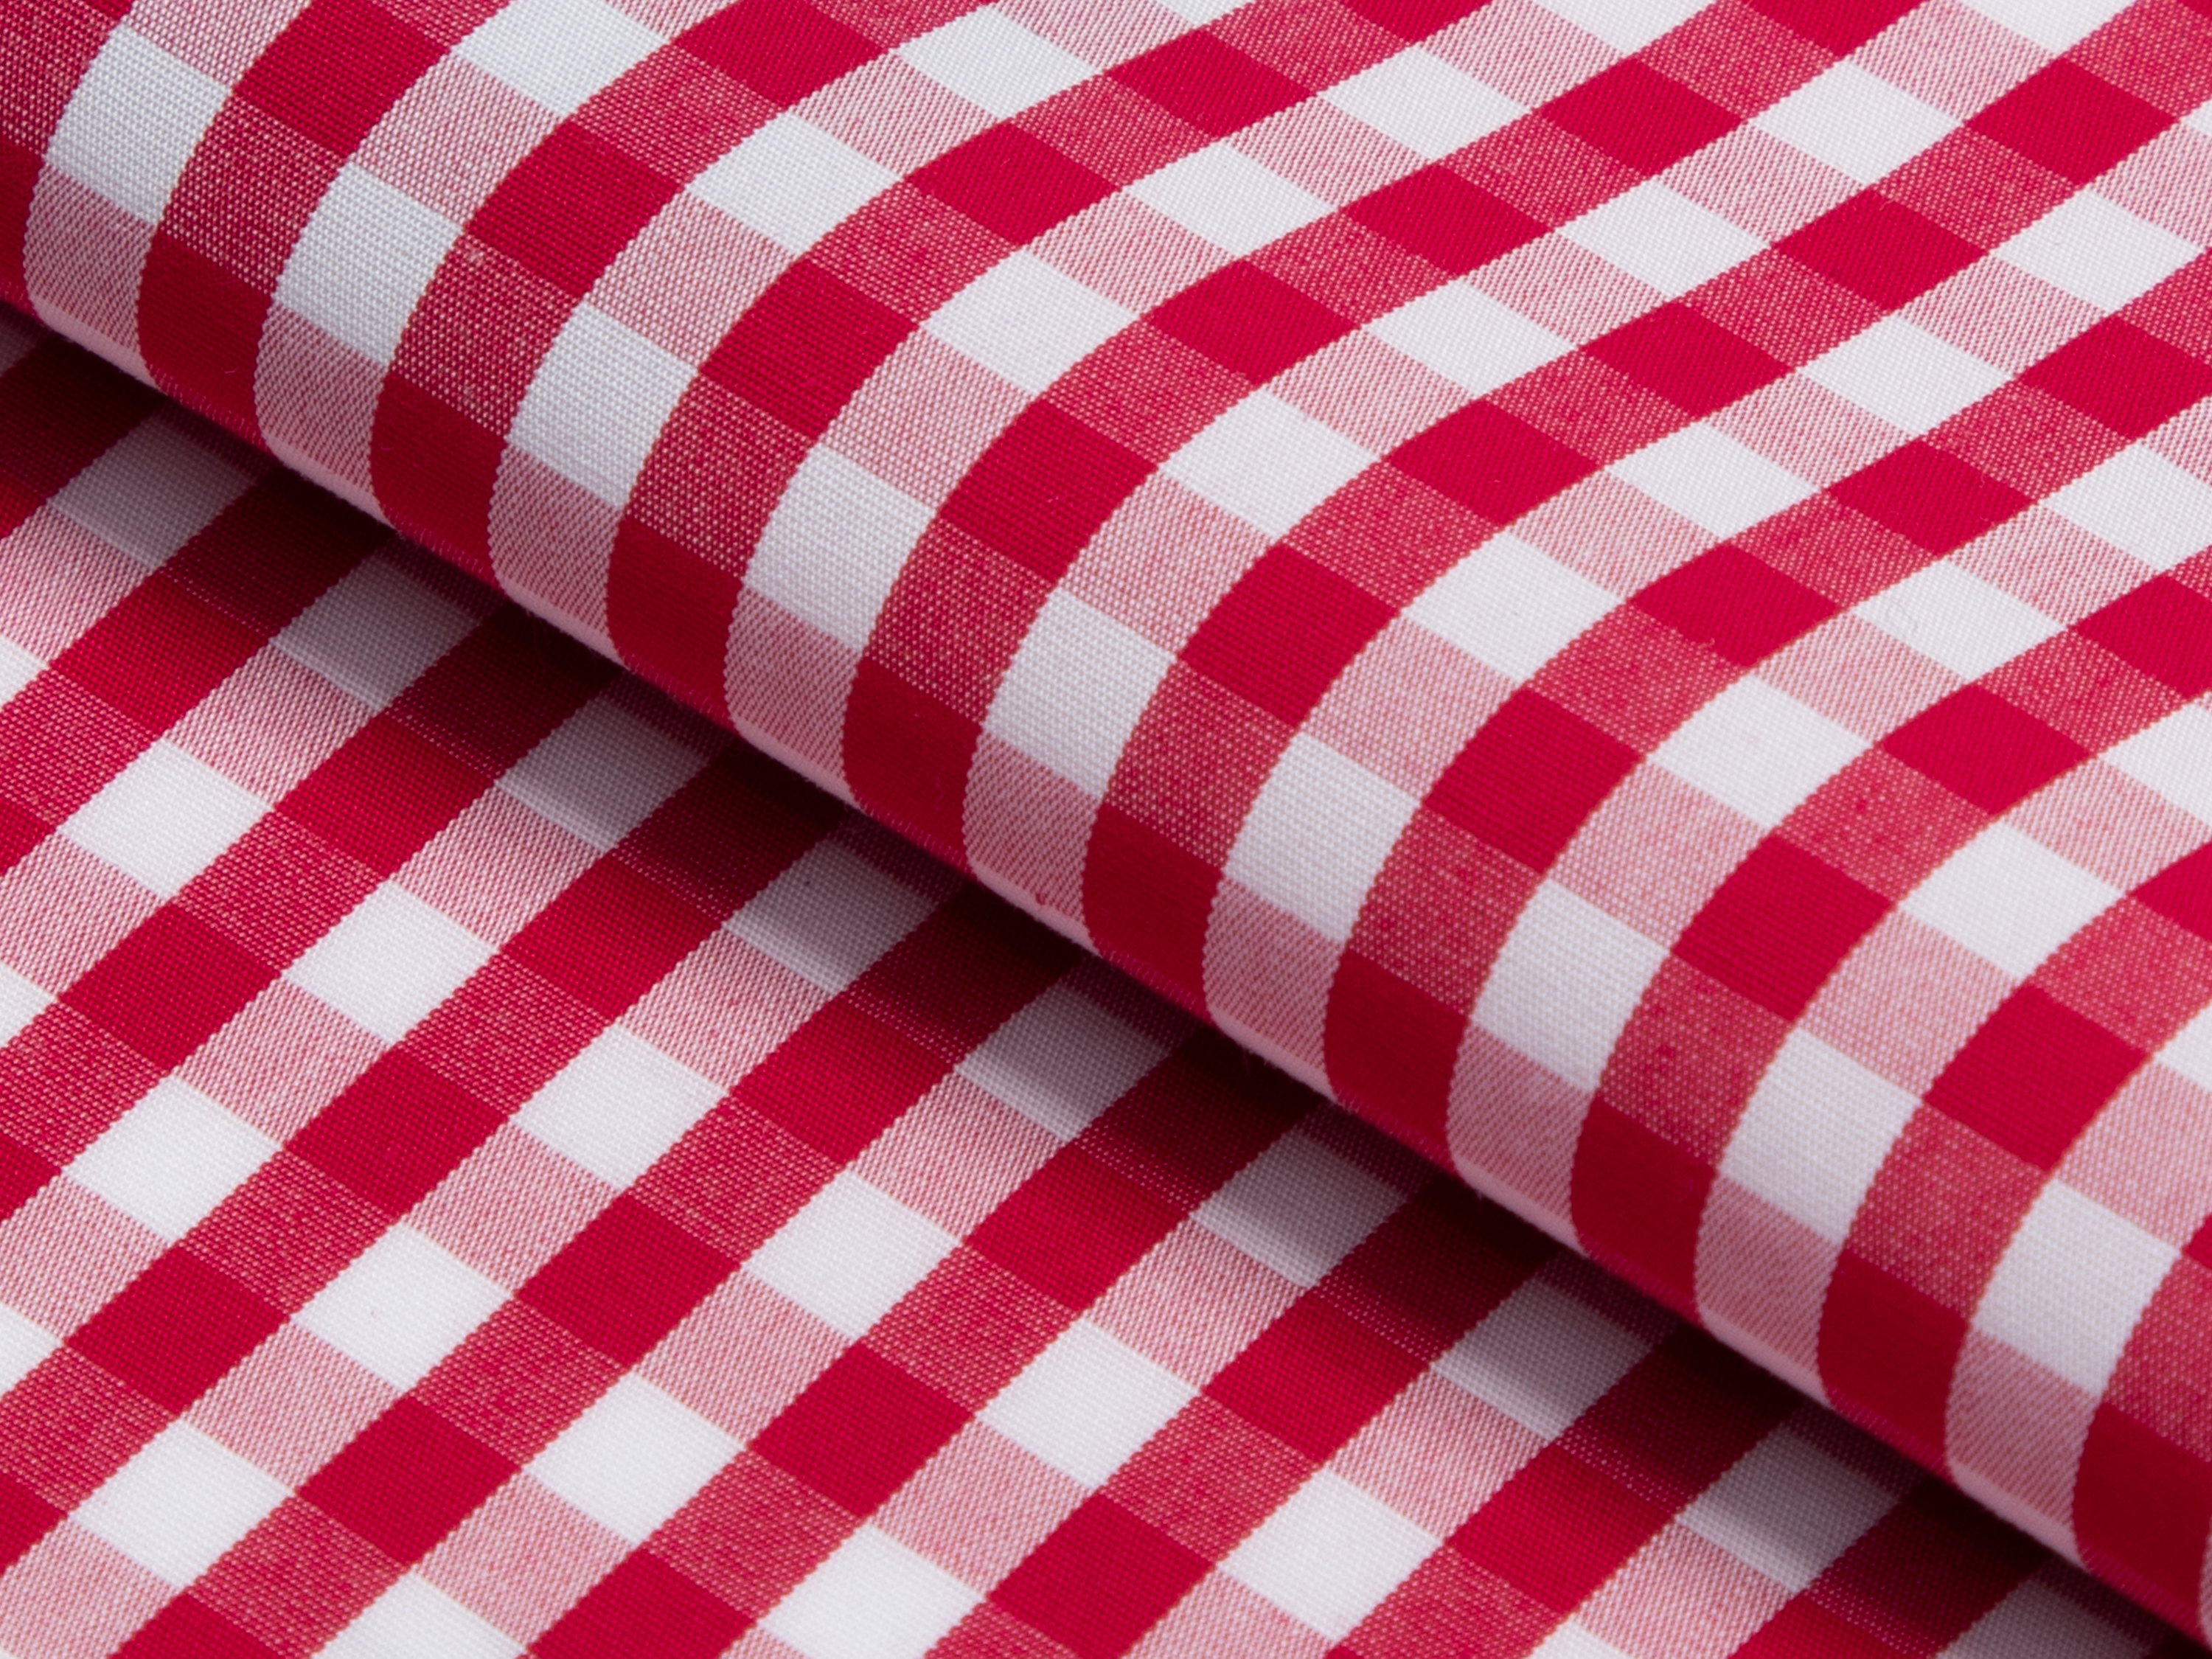 Buy tailor made shirts online - GINGHAM LUXURY (NEW) - Gingham Red